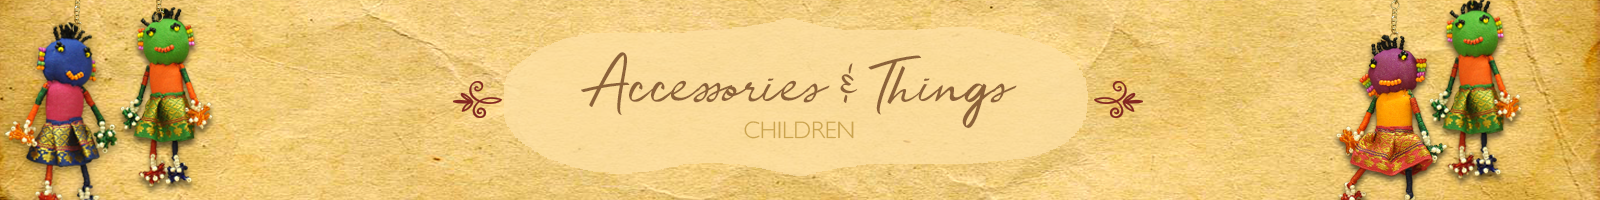 Authentic Handcrafted Accessories & Things for Children by The India Craft House